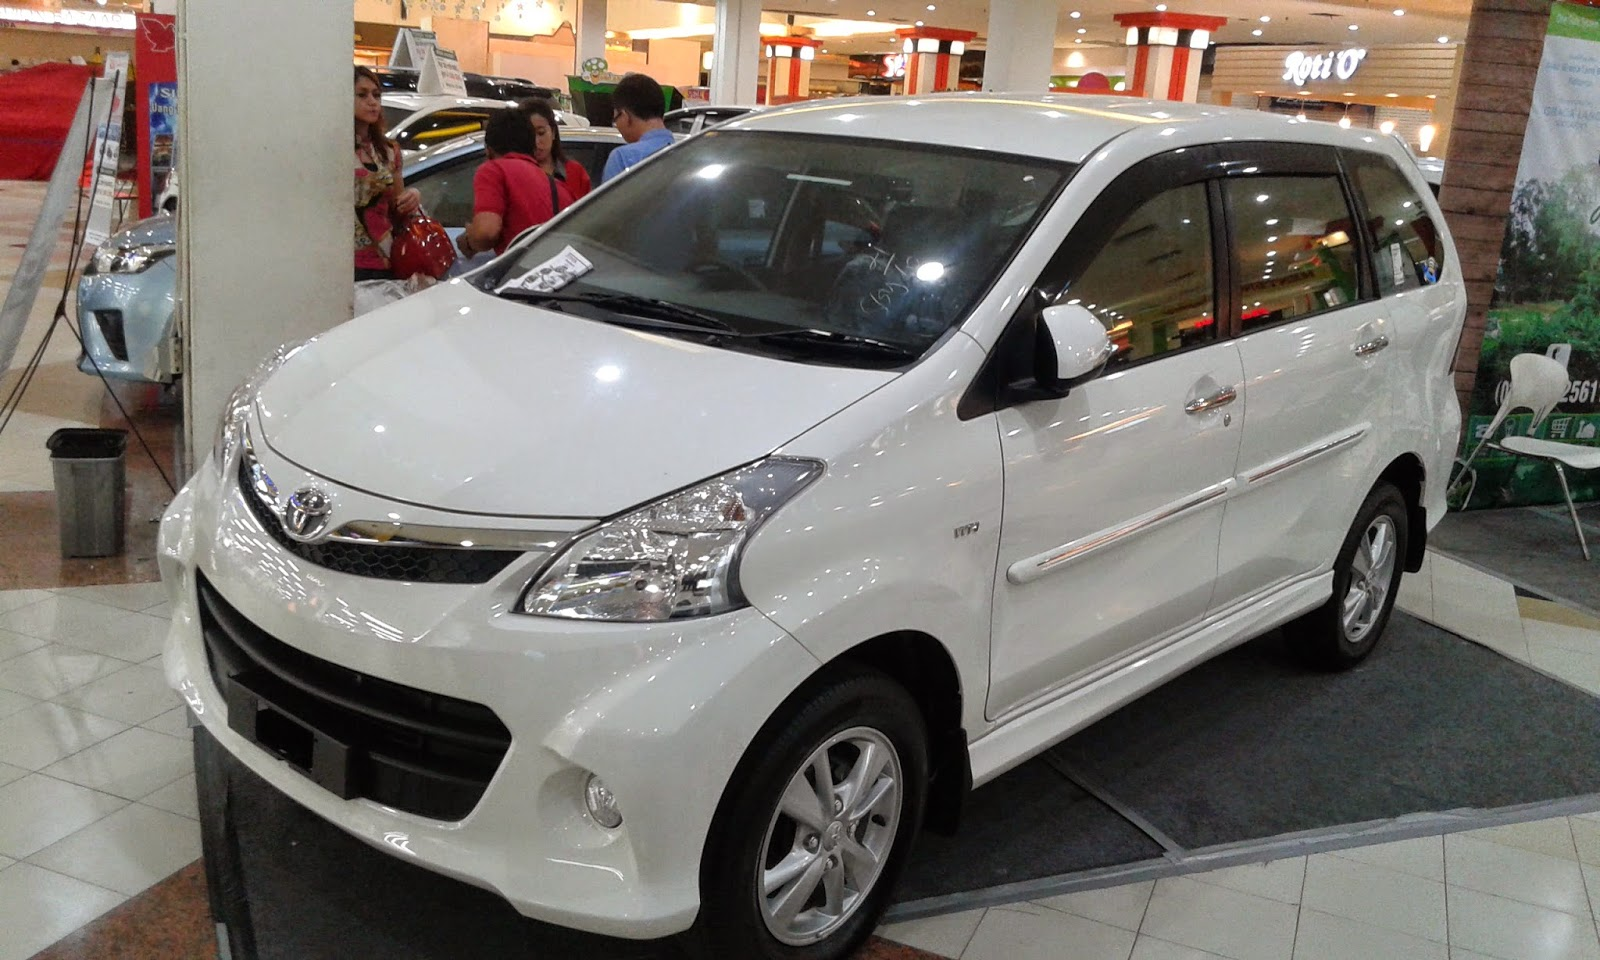 Harga Grand New Avanza Di Makassar All Vellfire Price 2015 Toyota Bulan